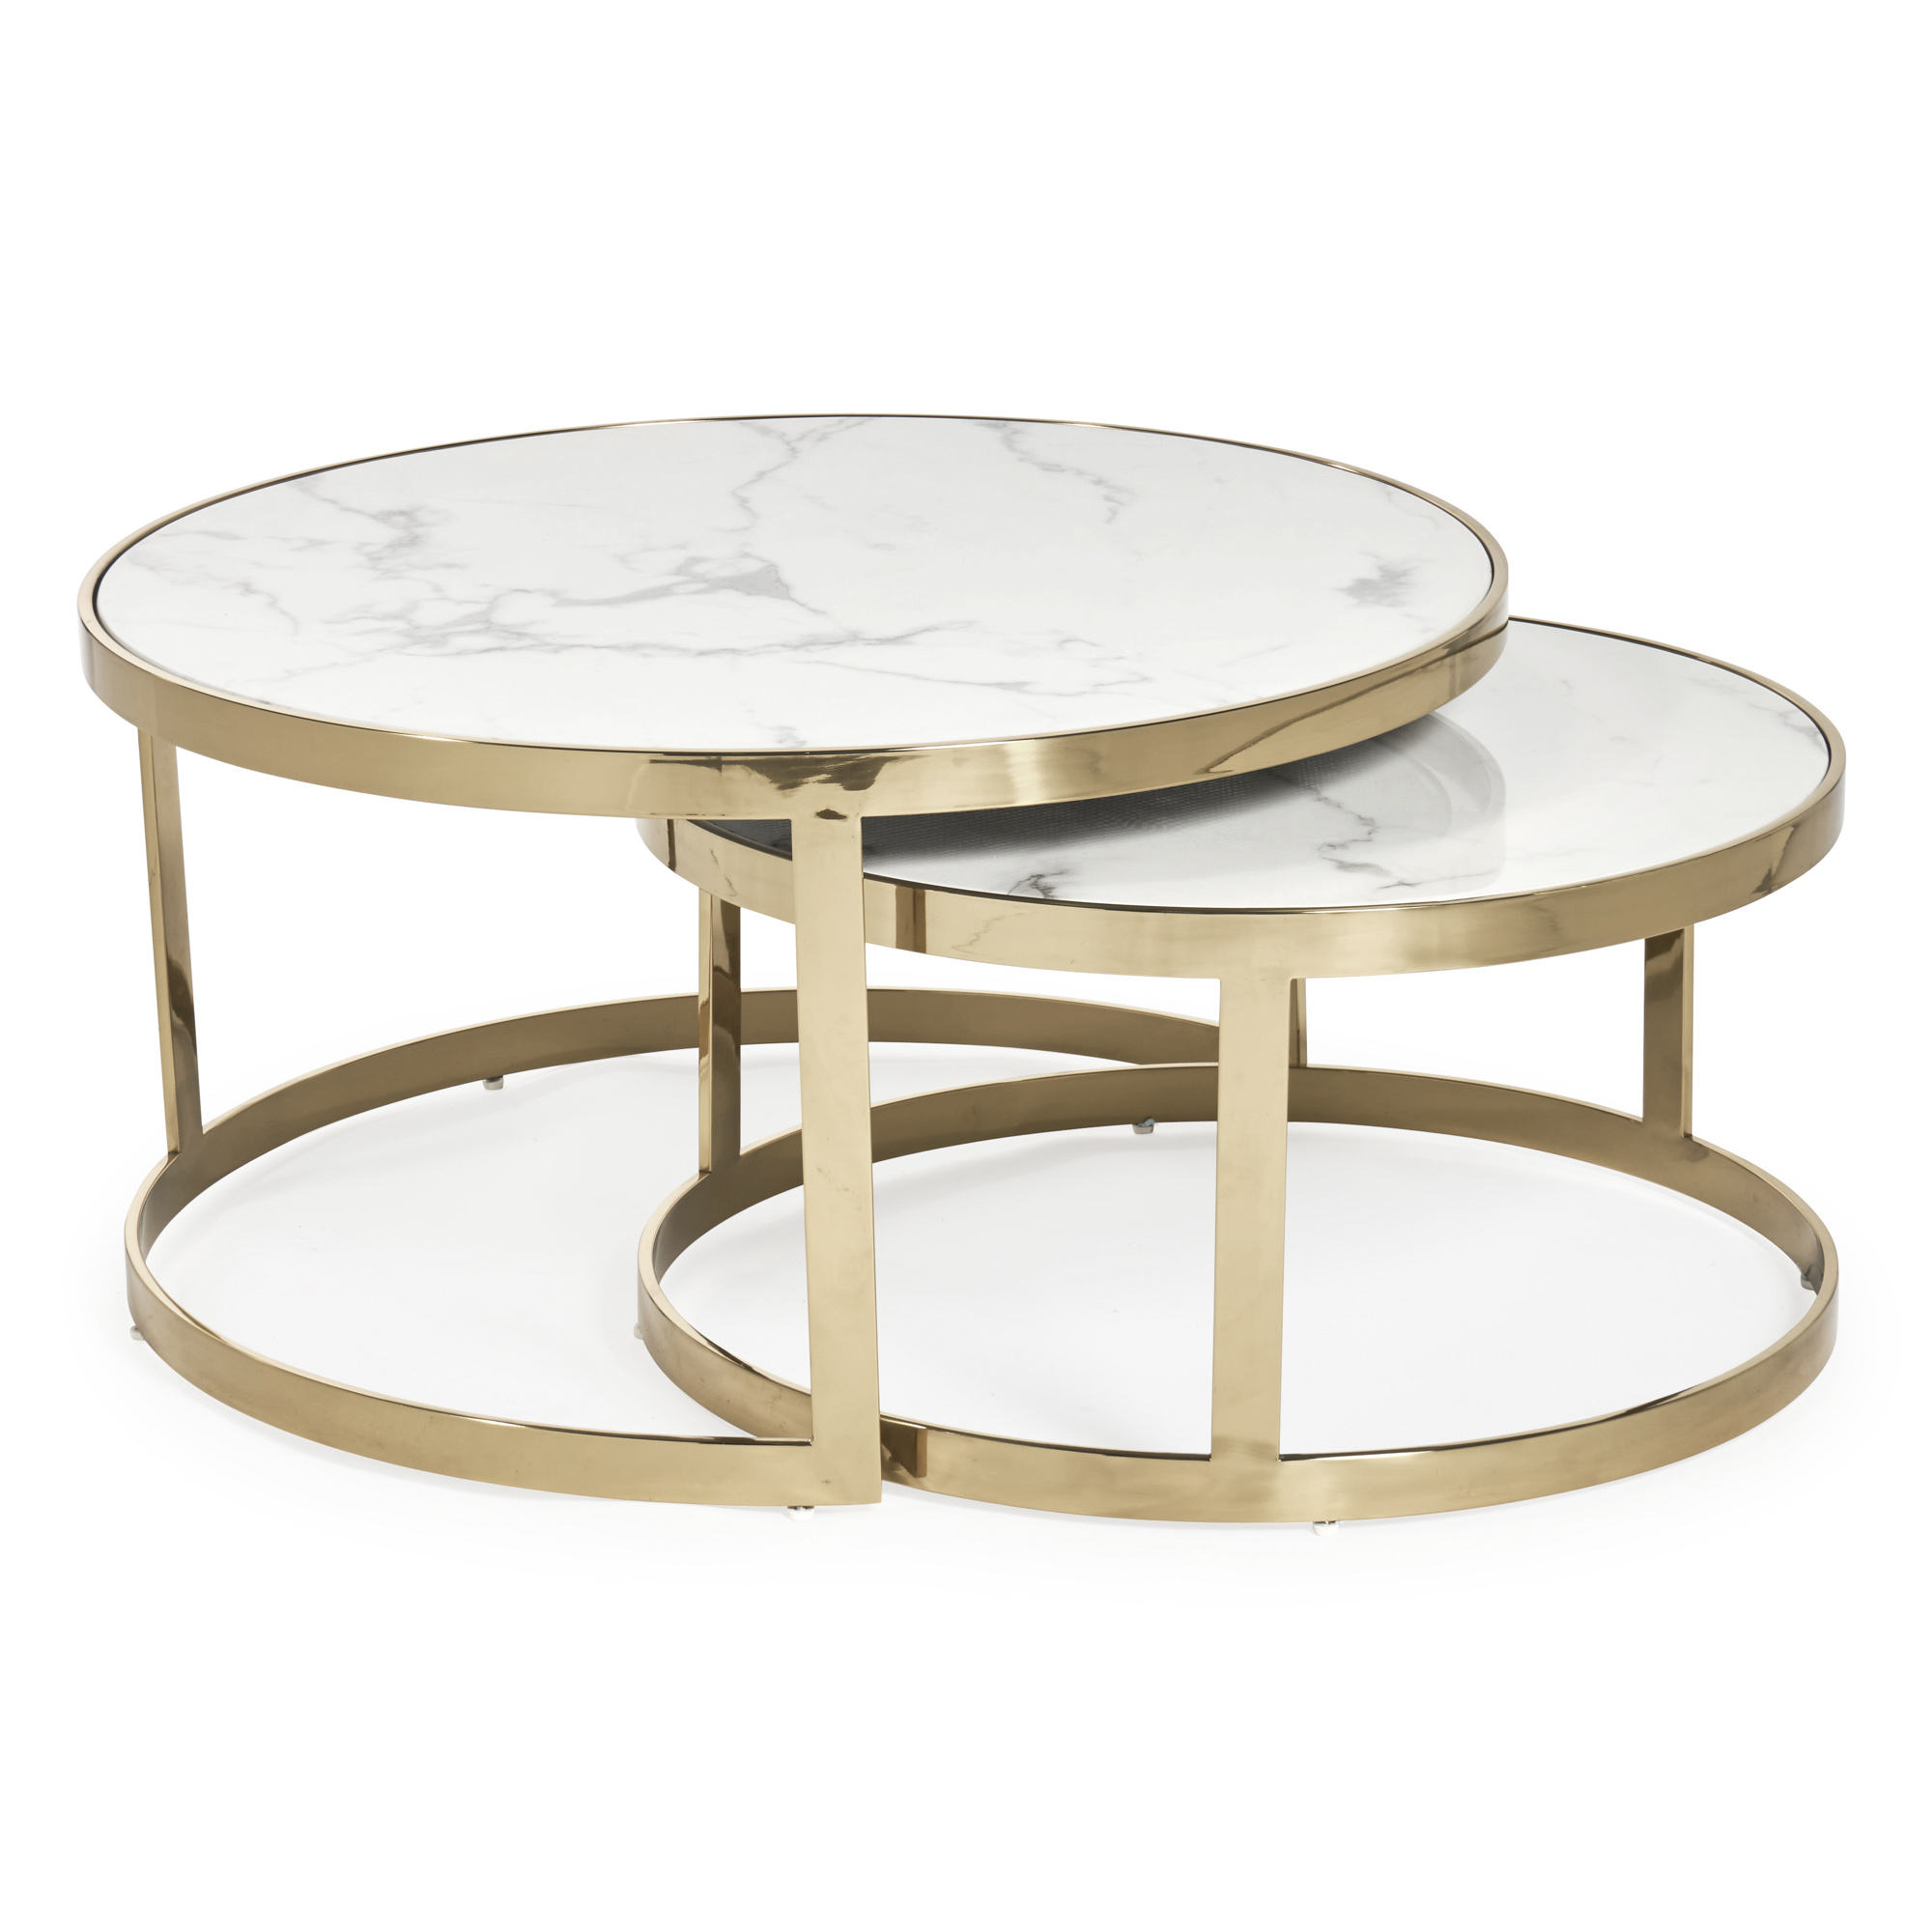 Nest of White Round Marble Dining Tables With Gold Frame (Set of 2)